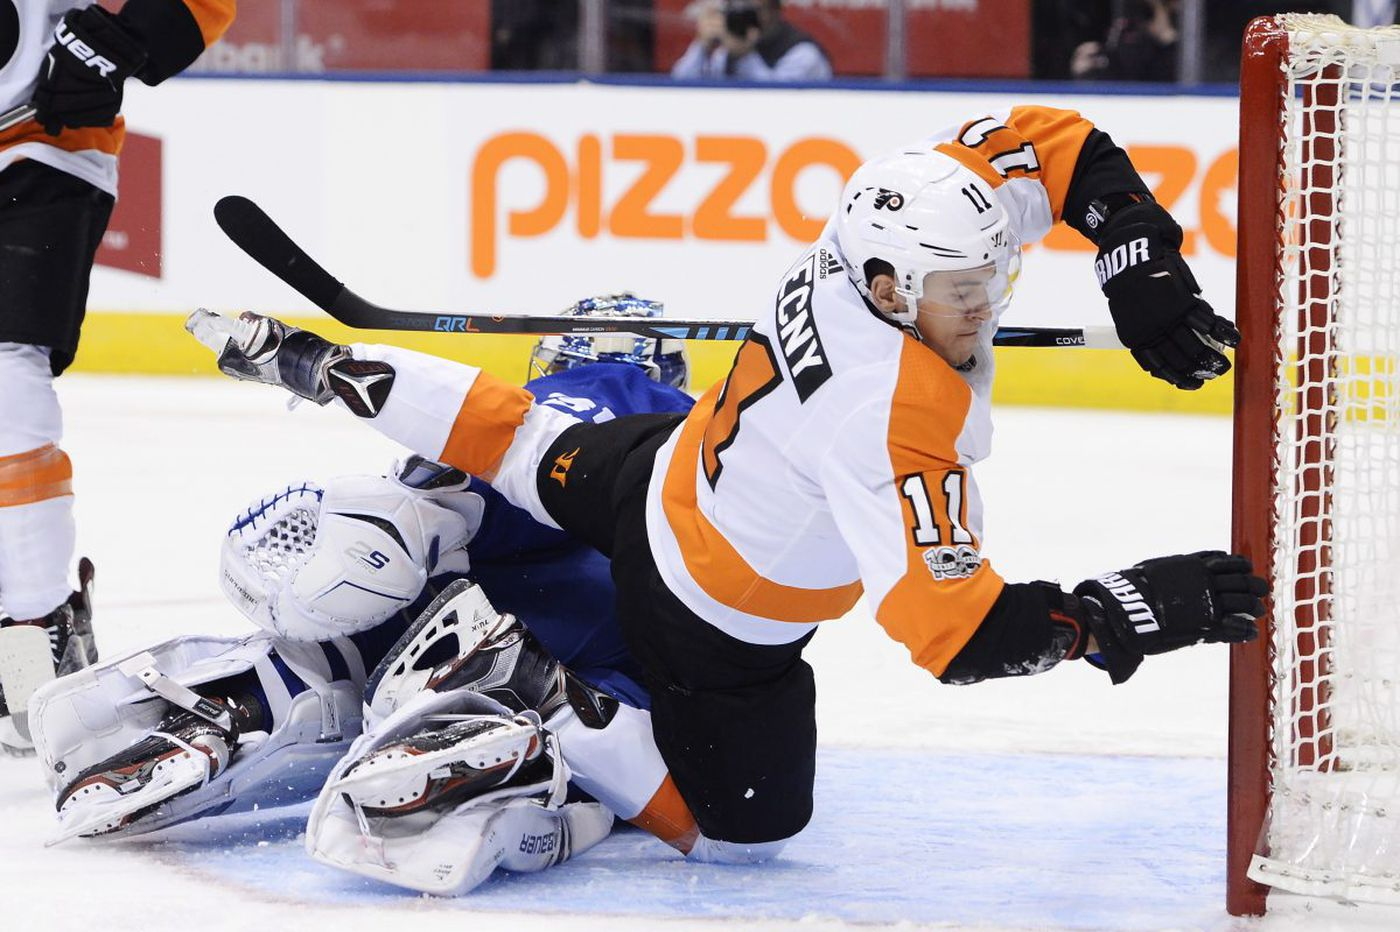 Sports Tonight: Flyers or Sixers, that is the question